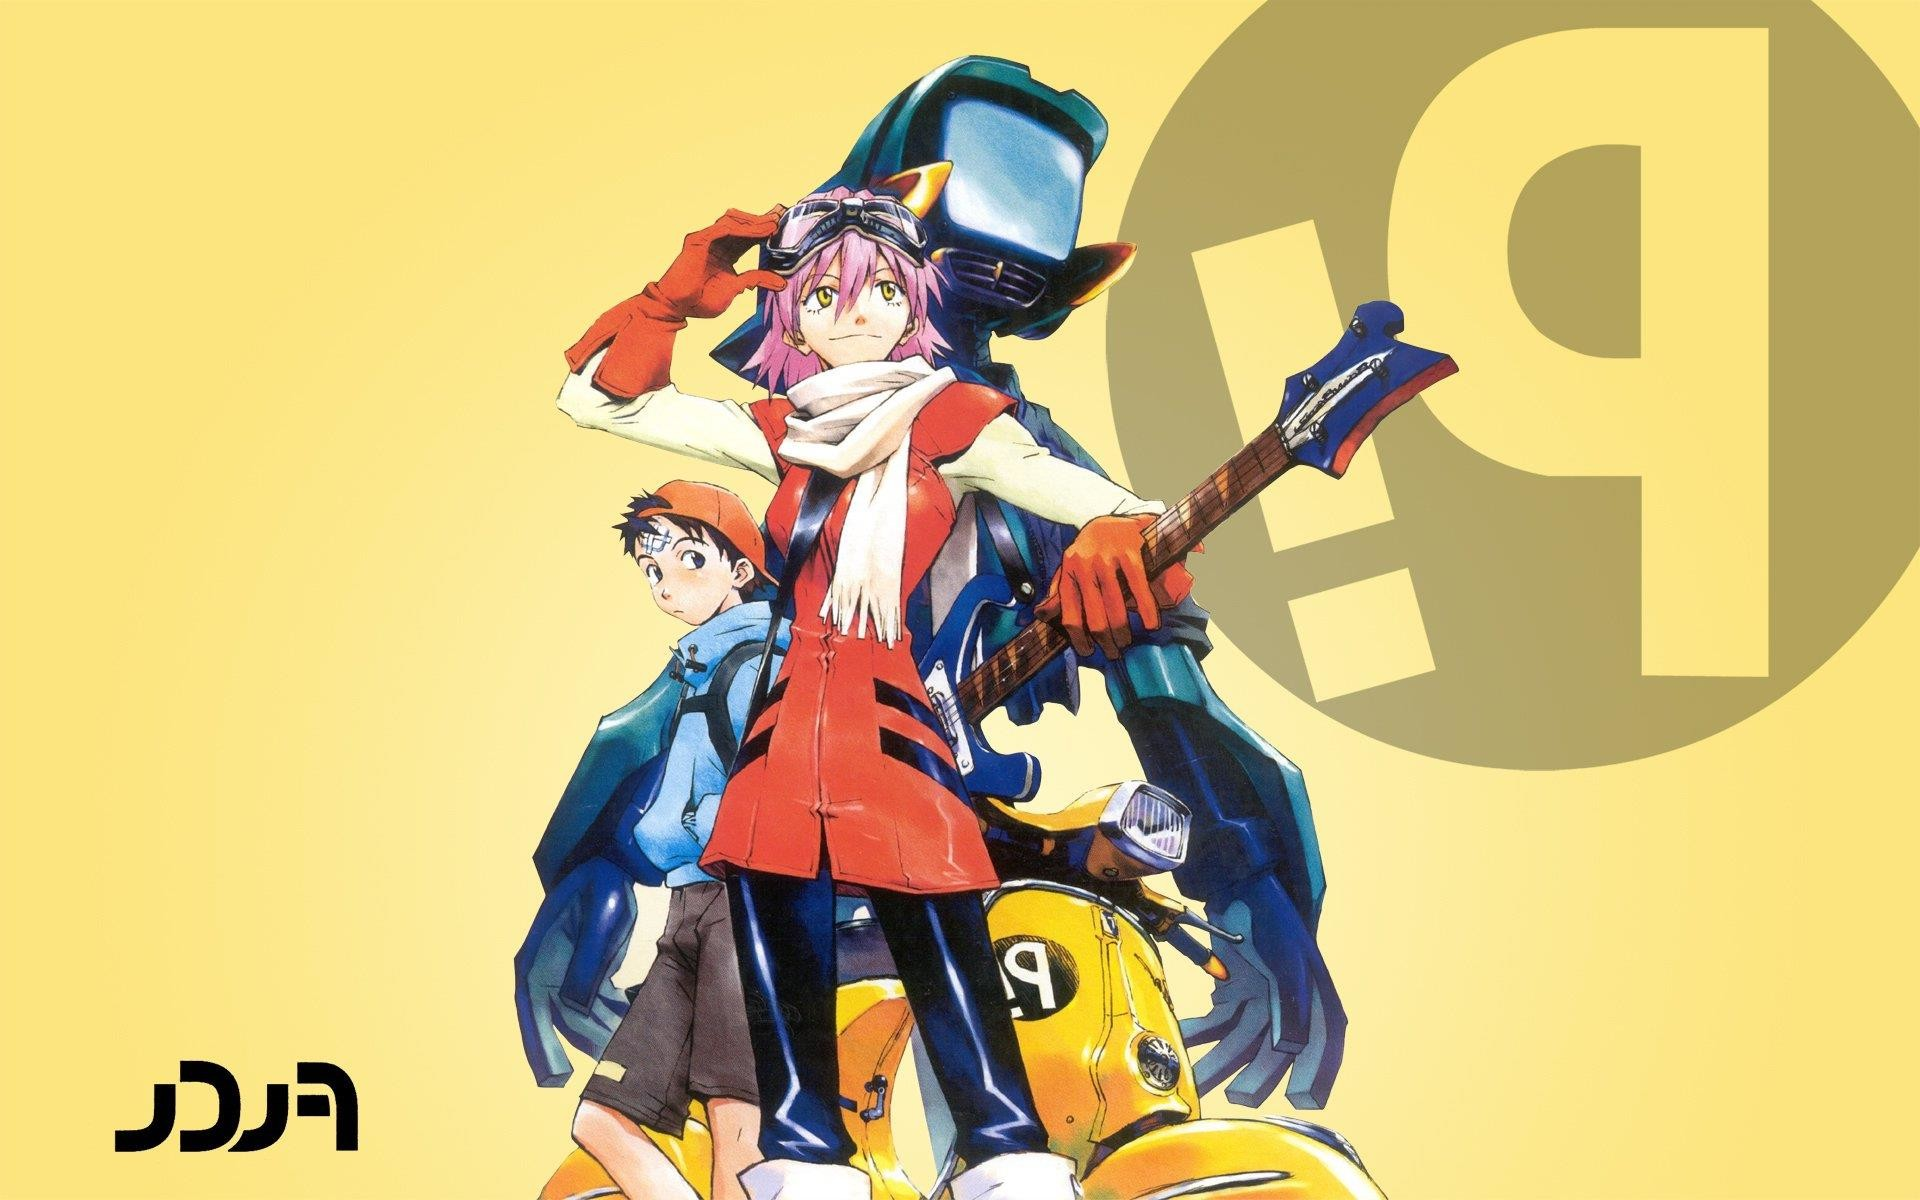 1920x1200 Backgrounds flcl fooly cooly haruhara haruko